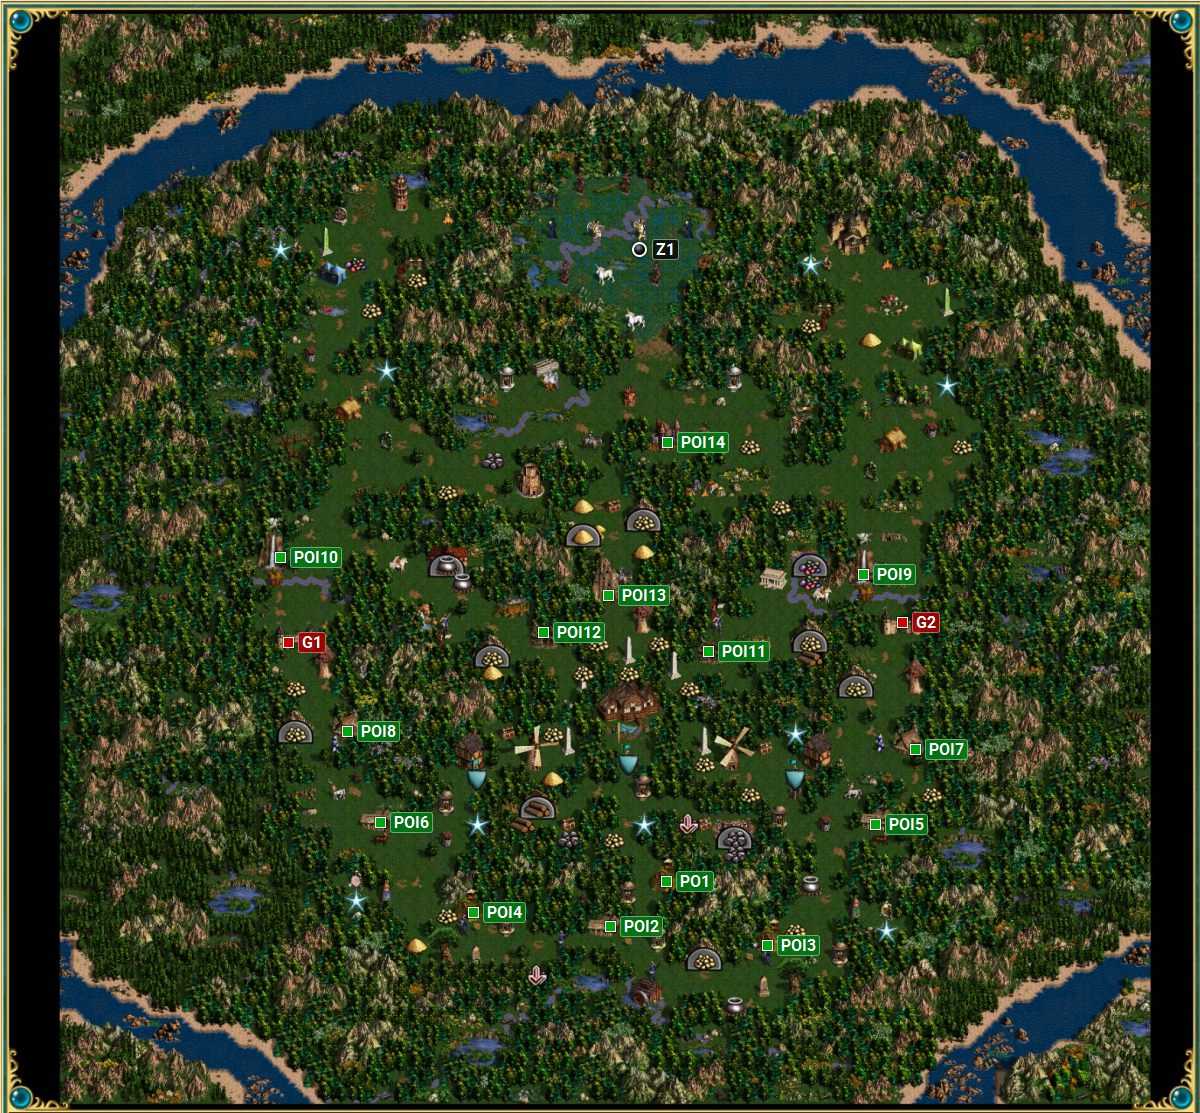 Heroes of Might & Magic III: HD Edition - The Grail mission - Seeds of Disconent campaign ...